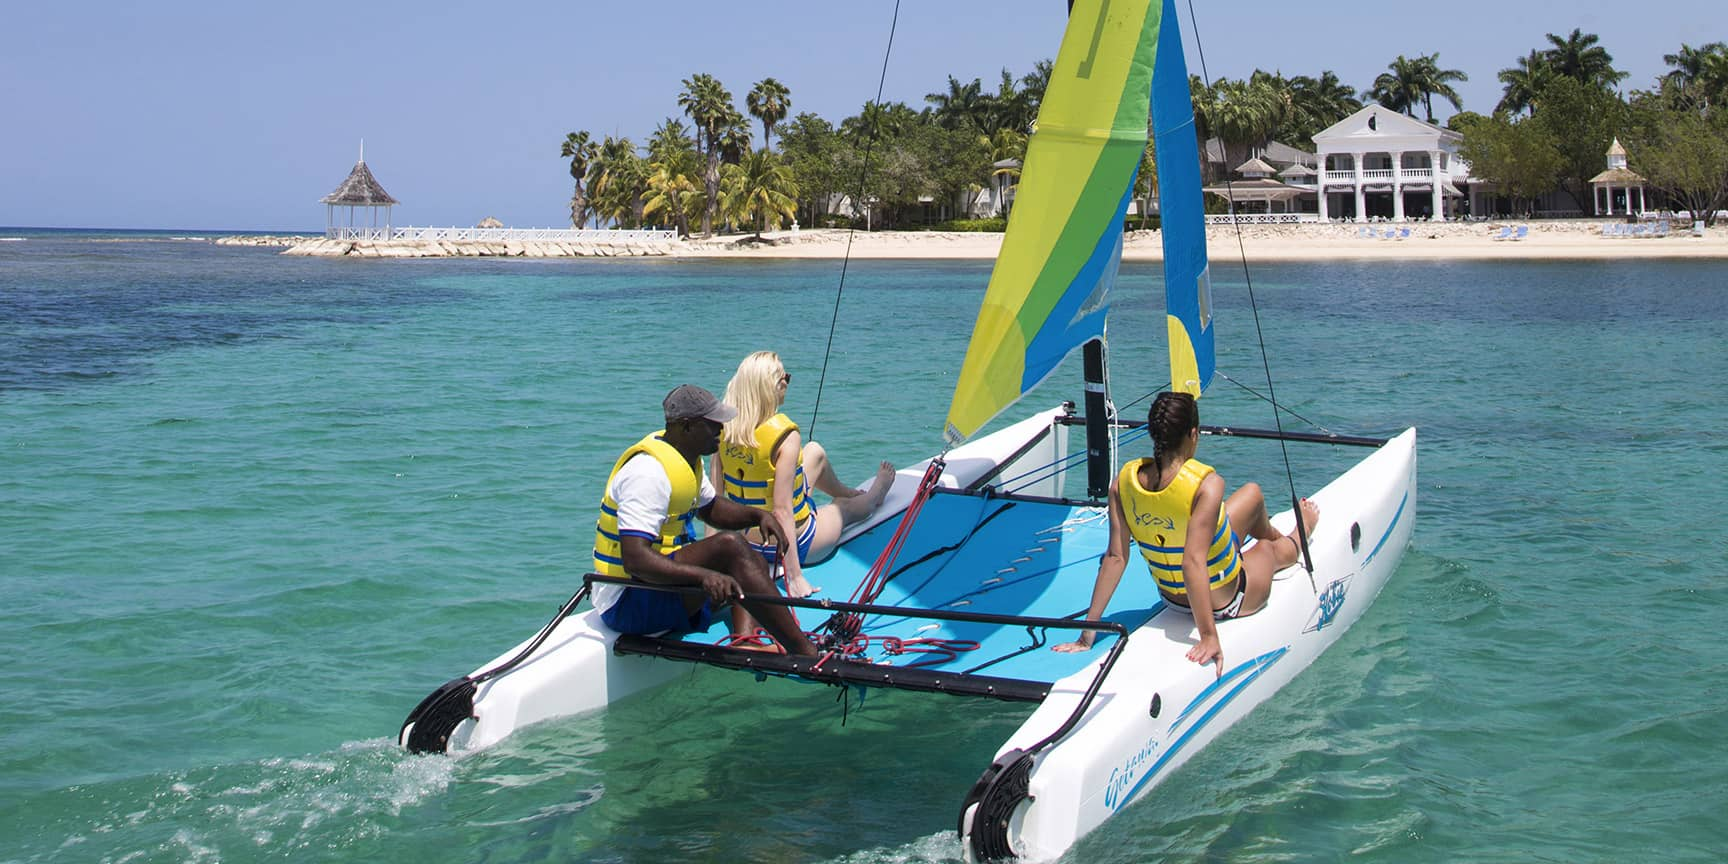 activity watersports boat04.jpg